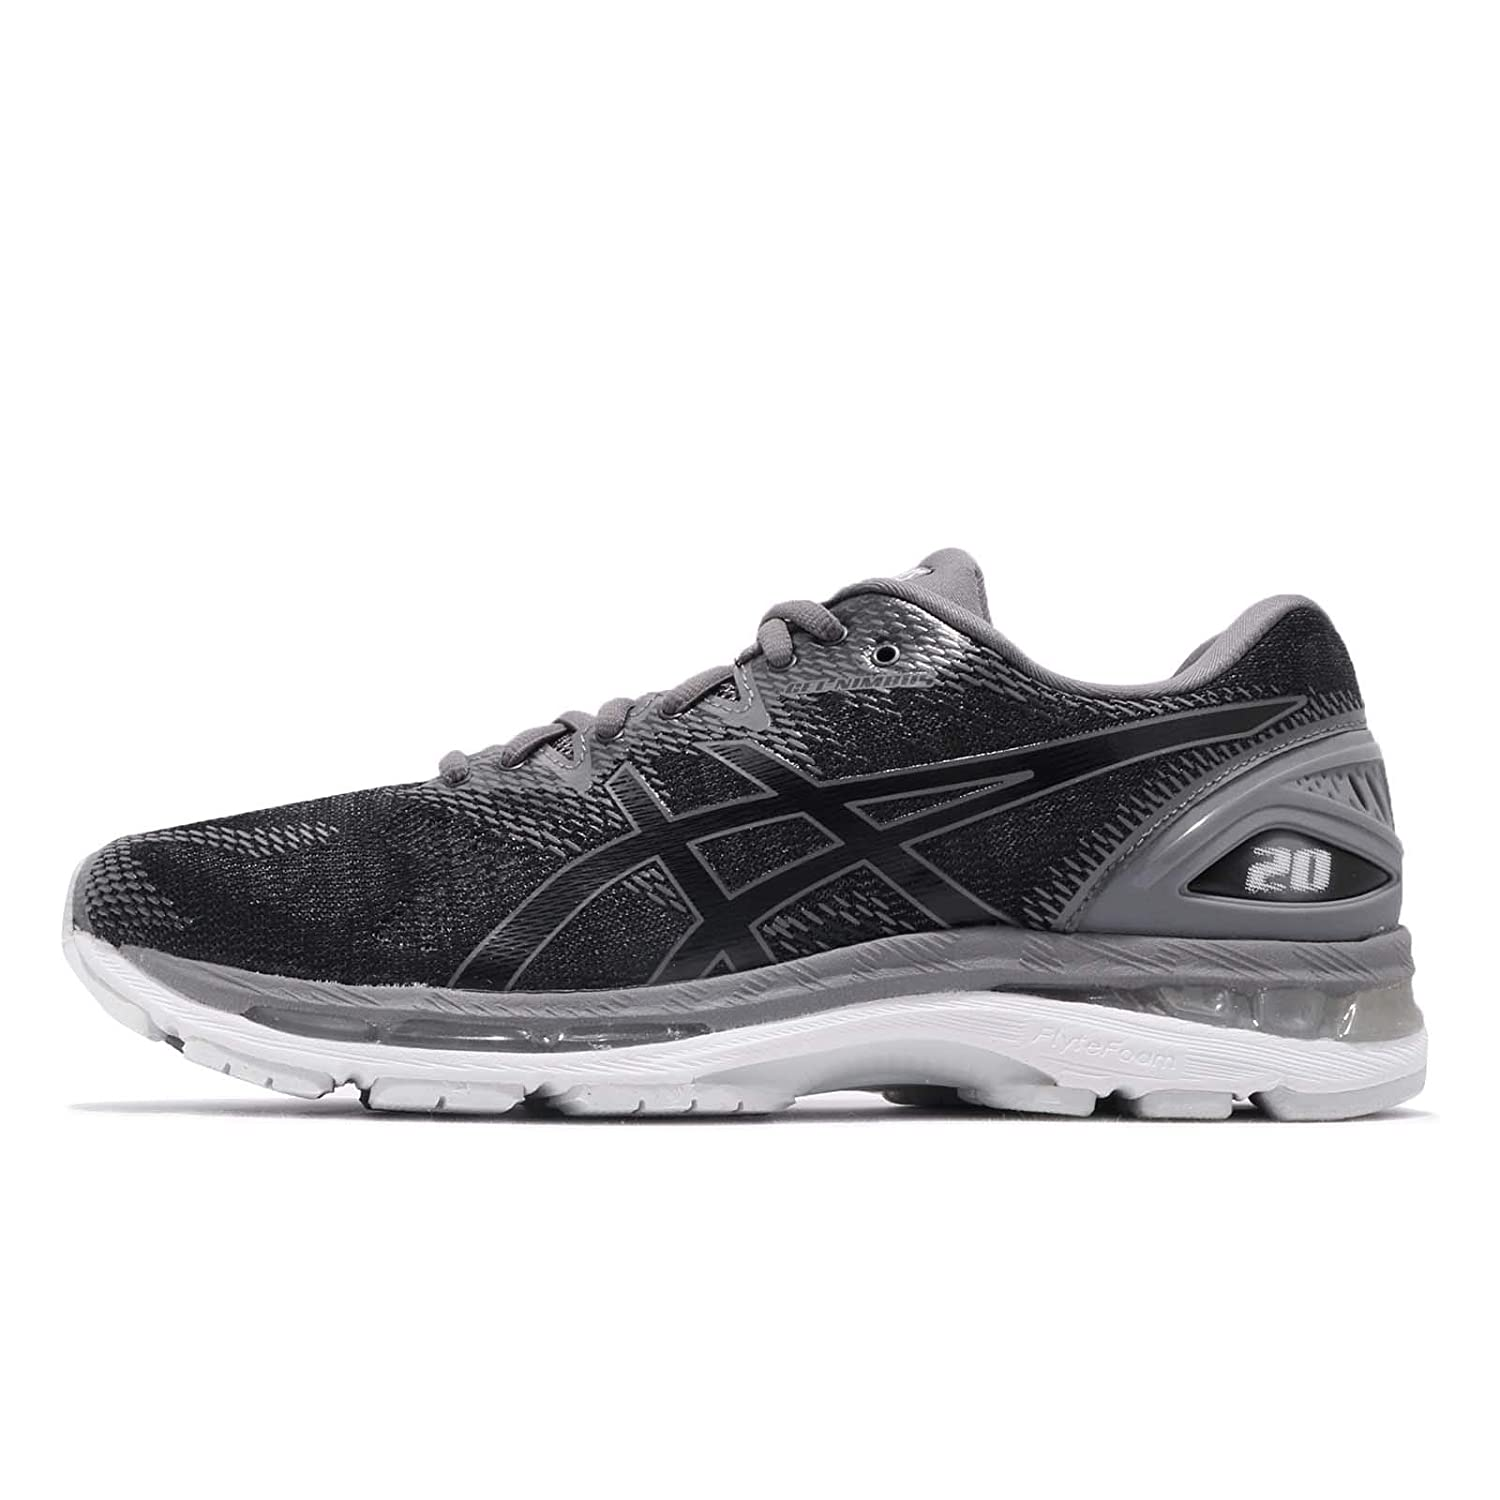 Gel-Nimbus 20 Track and Field Shoes